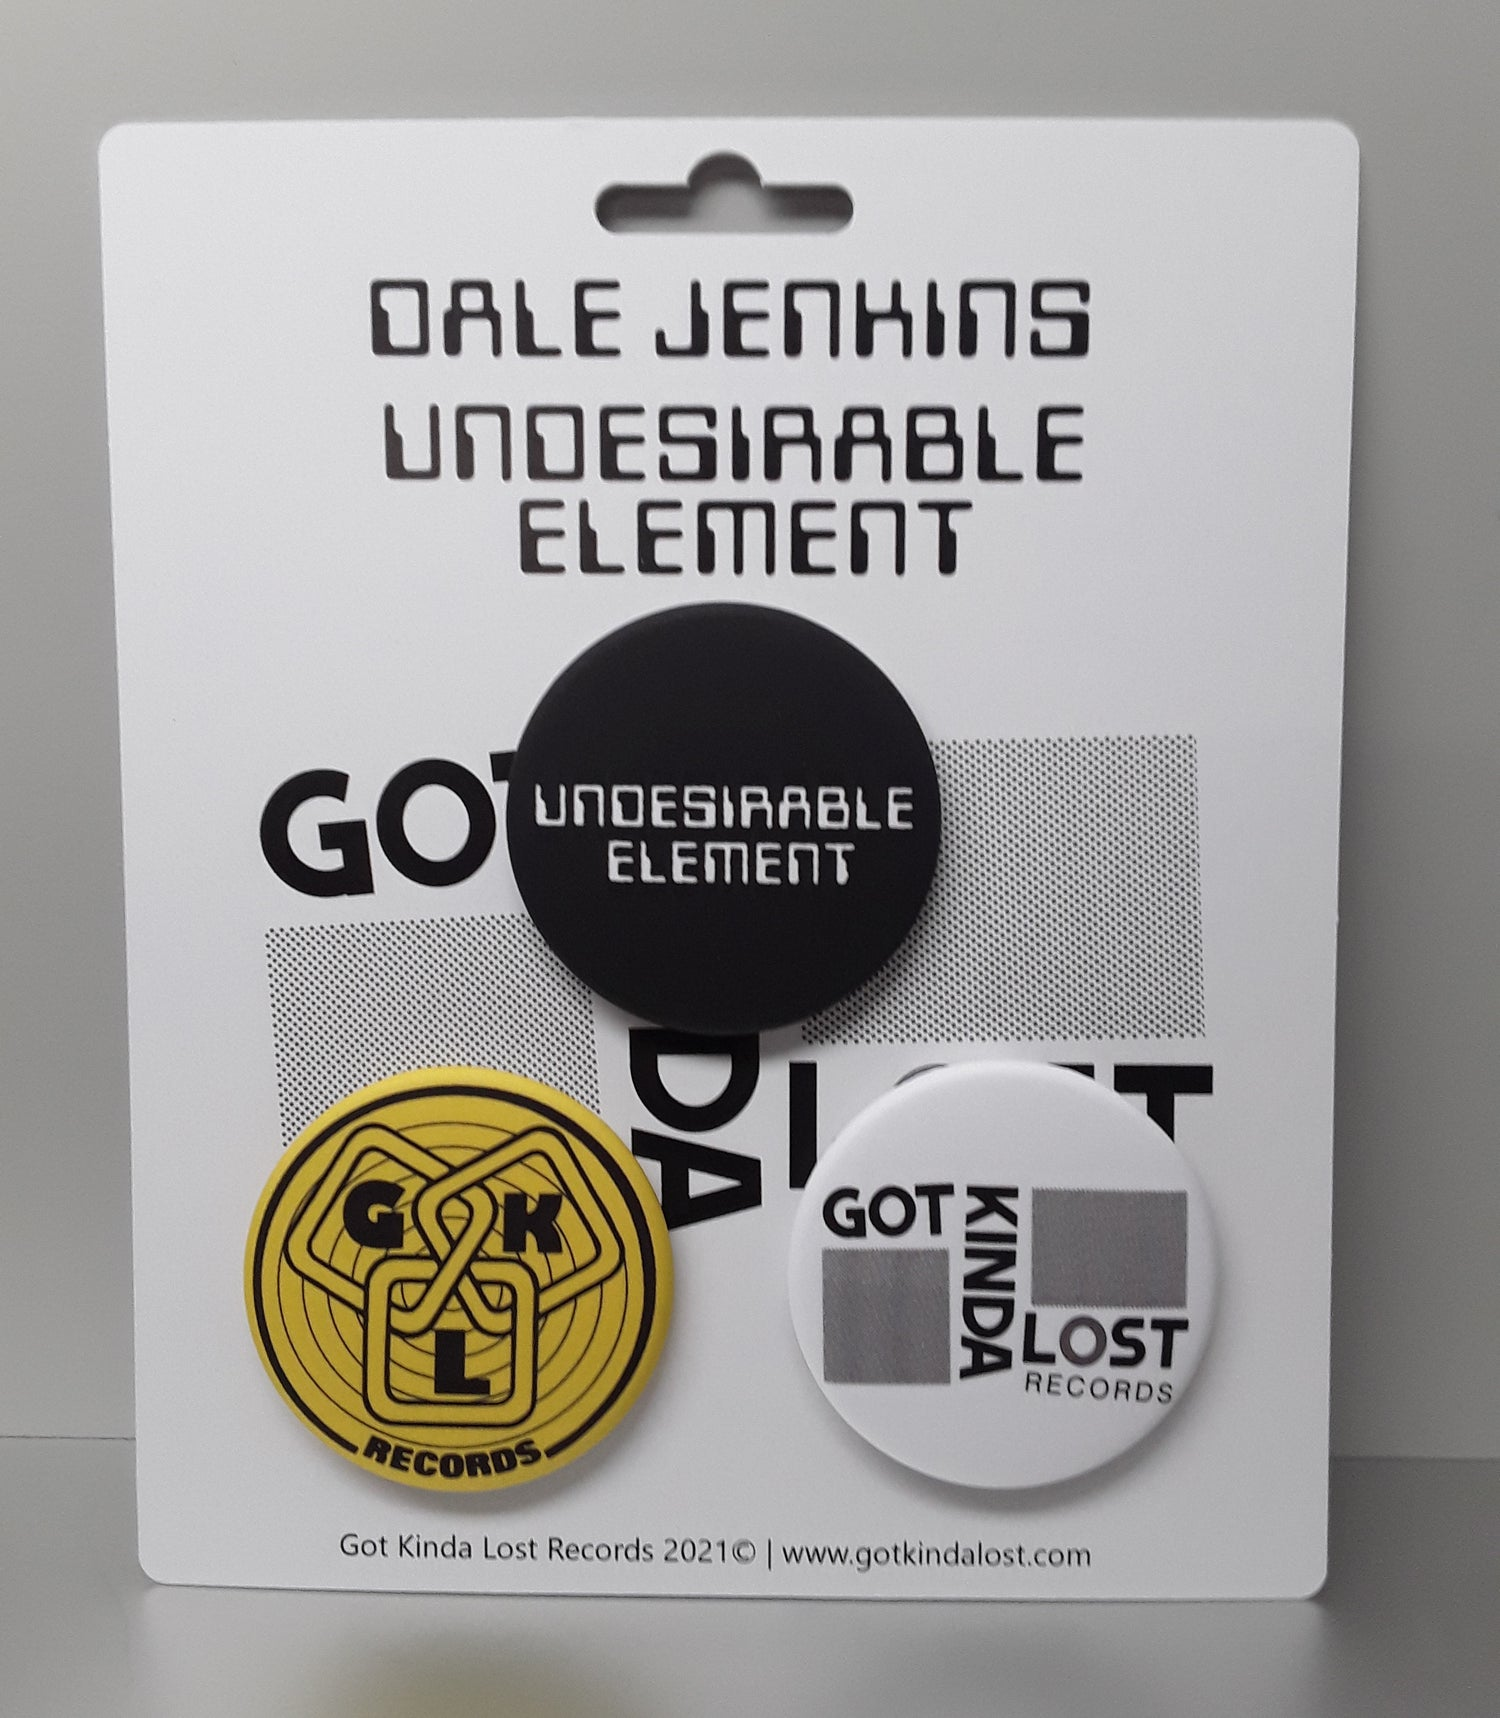 Image of [PRE-ORDER] DALE JENKINS - 'Undesirable Element' (GKL, 2021 - GKL009 / GKL009CD) ALL EDITIONS